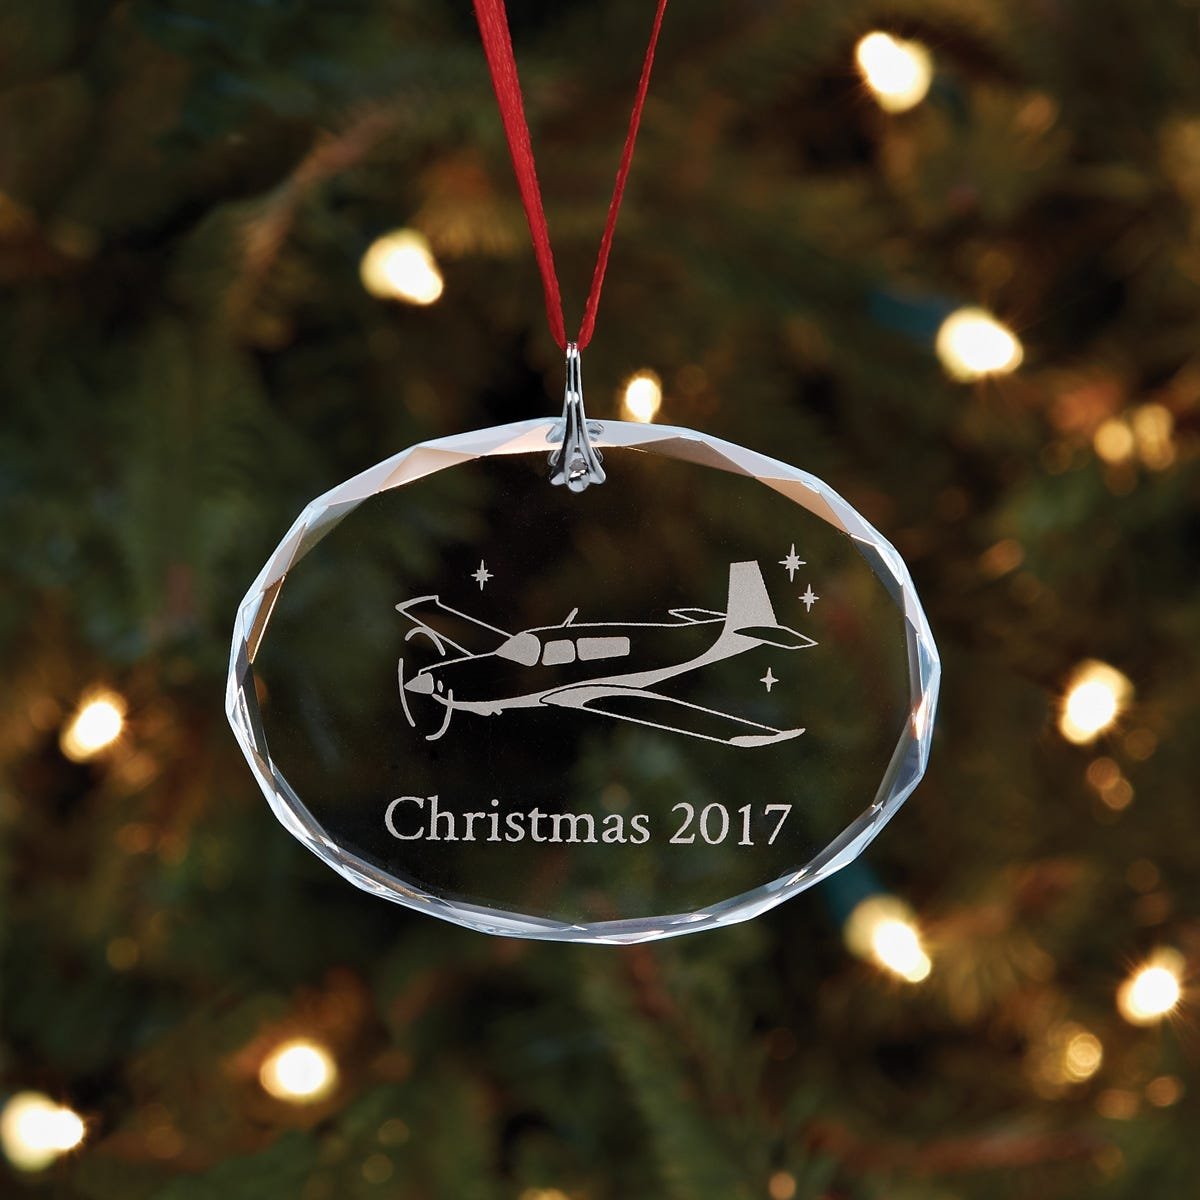 2017 Sporty\'s Christmas Ornament - from Sporty\'s Pilot Shop